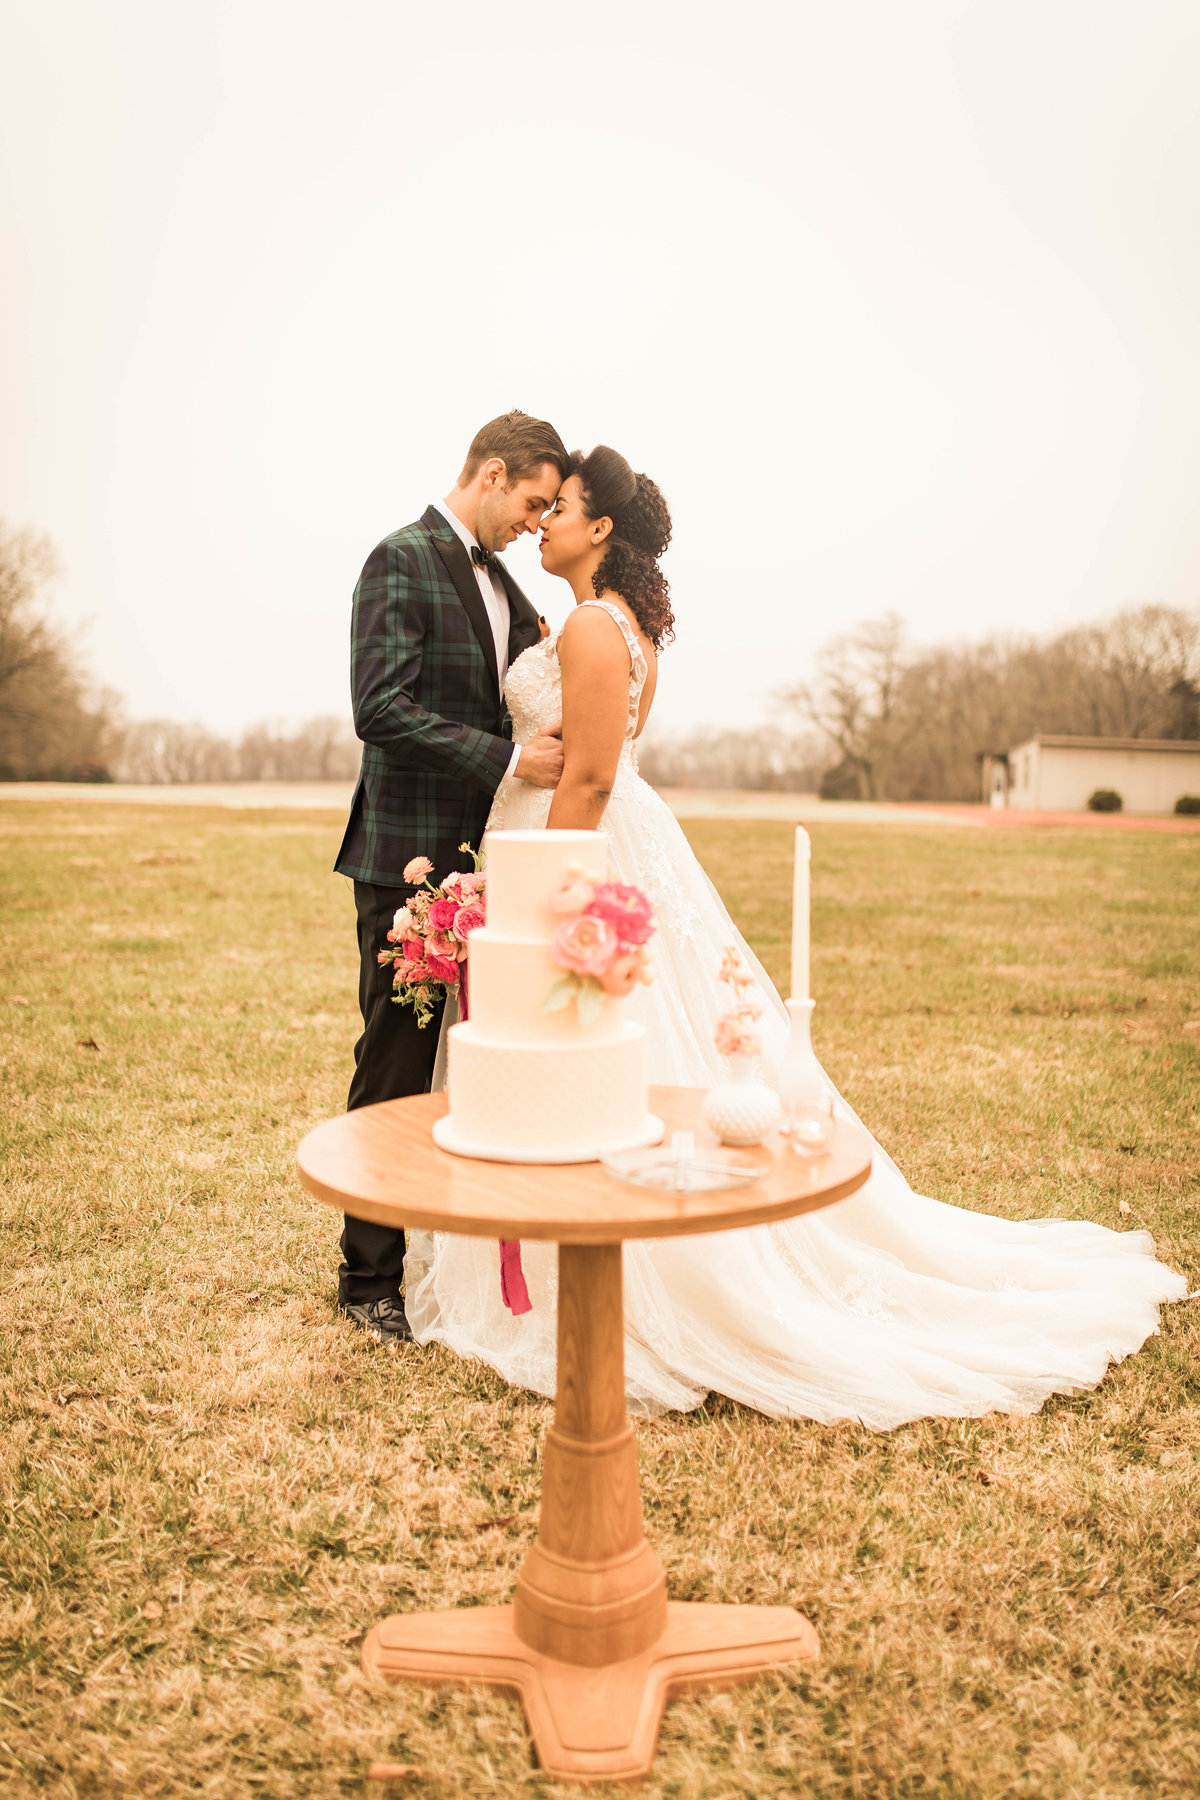 Retro Styled Shoot - Sophia and Andrew - St Louis Wedding Photographer - Allison Slater Photography 172